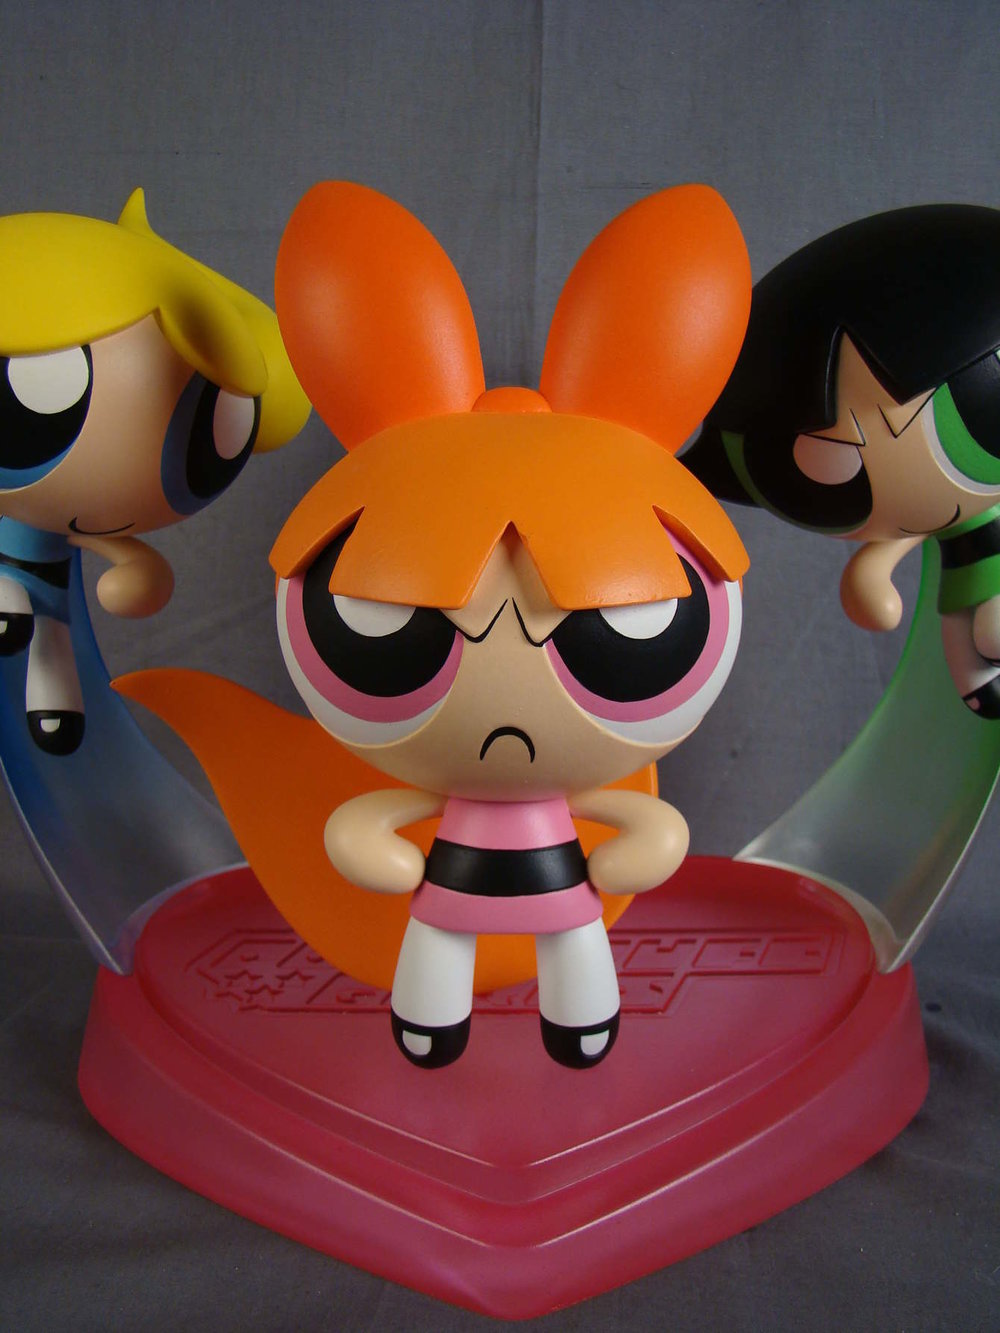 Cartoon-Network-Powerpuff-Girls-DSC06699_1340_c.JPG